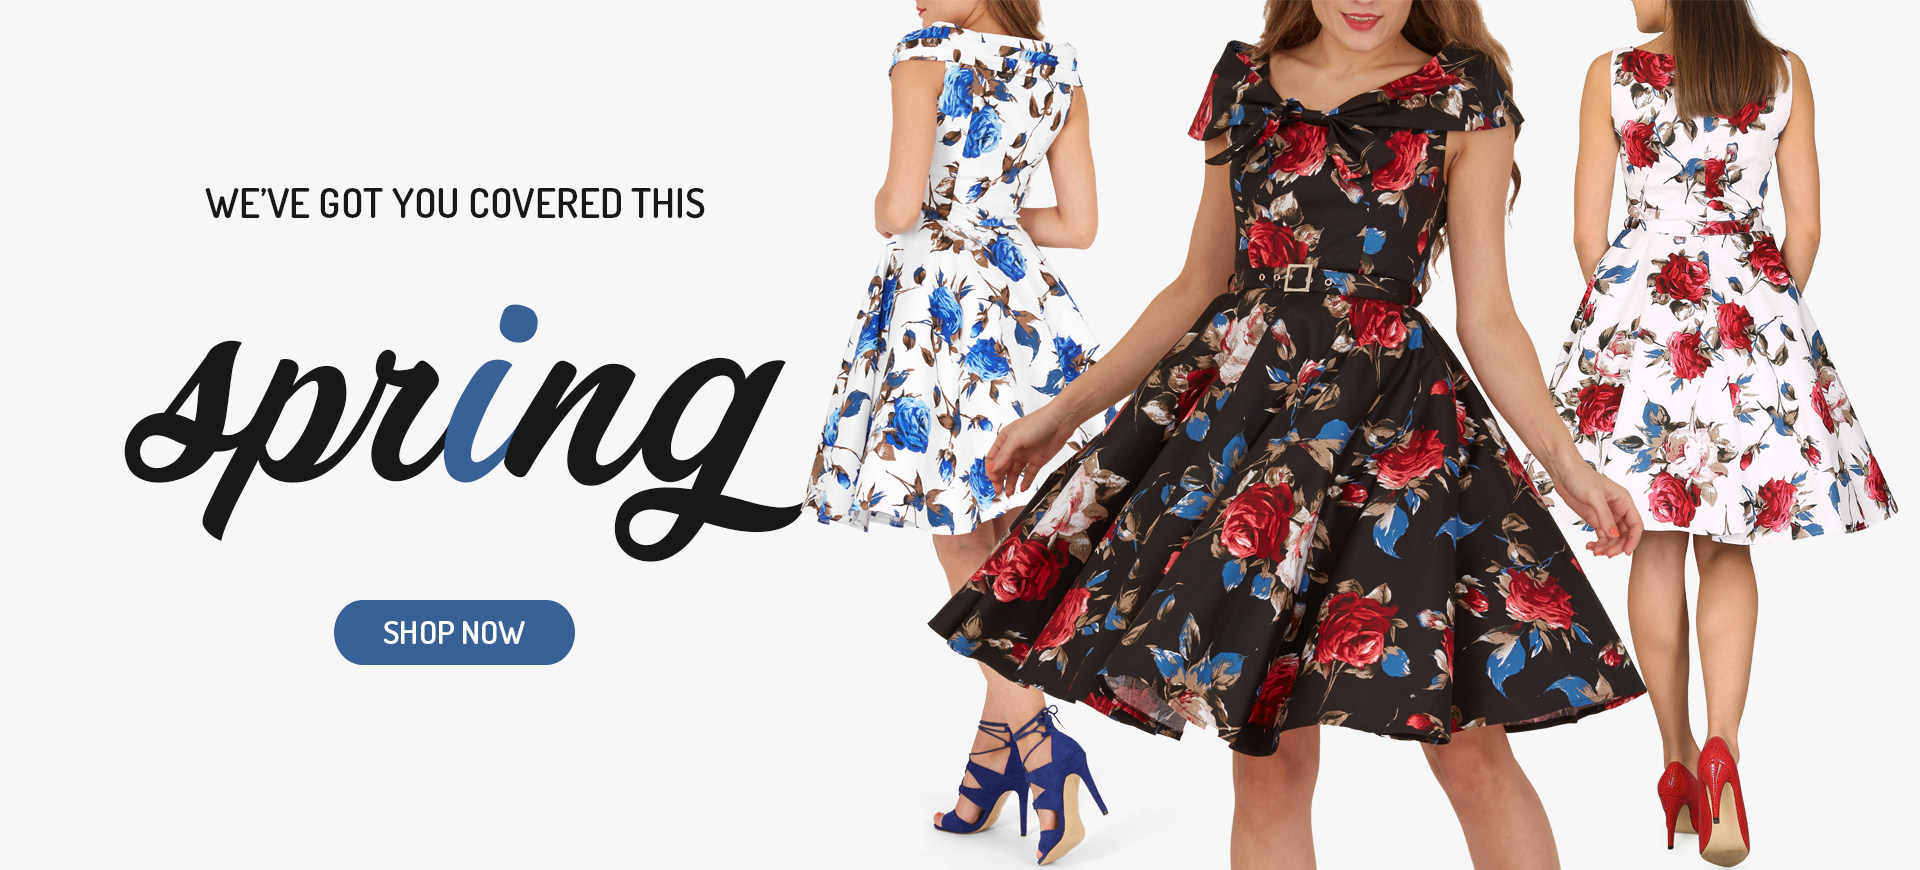 We've got you covered this Spring. Shop our vintage spring dress collection now for your perfect 1950s inspired retro look!